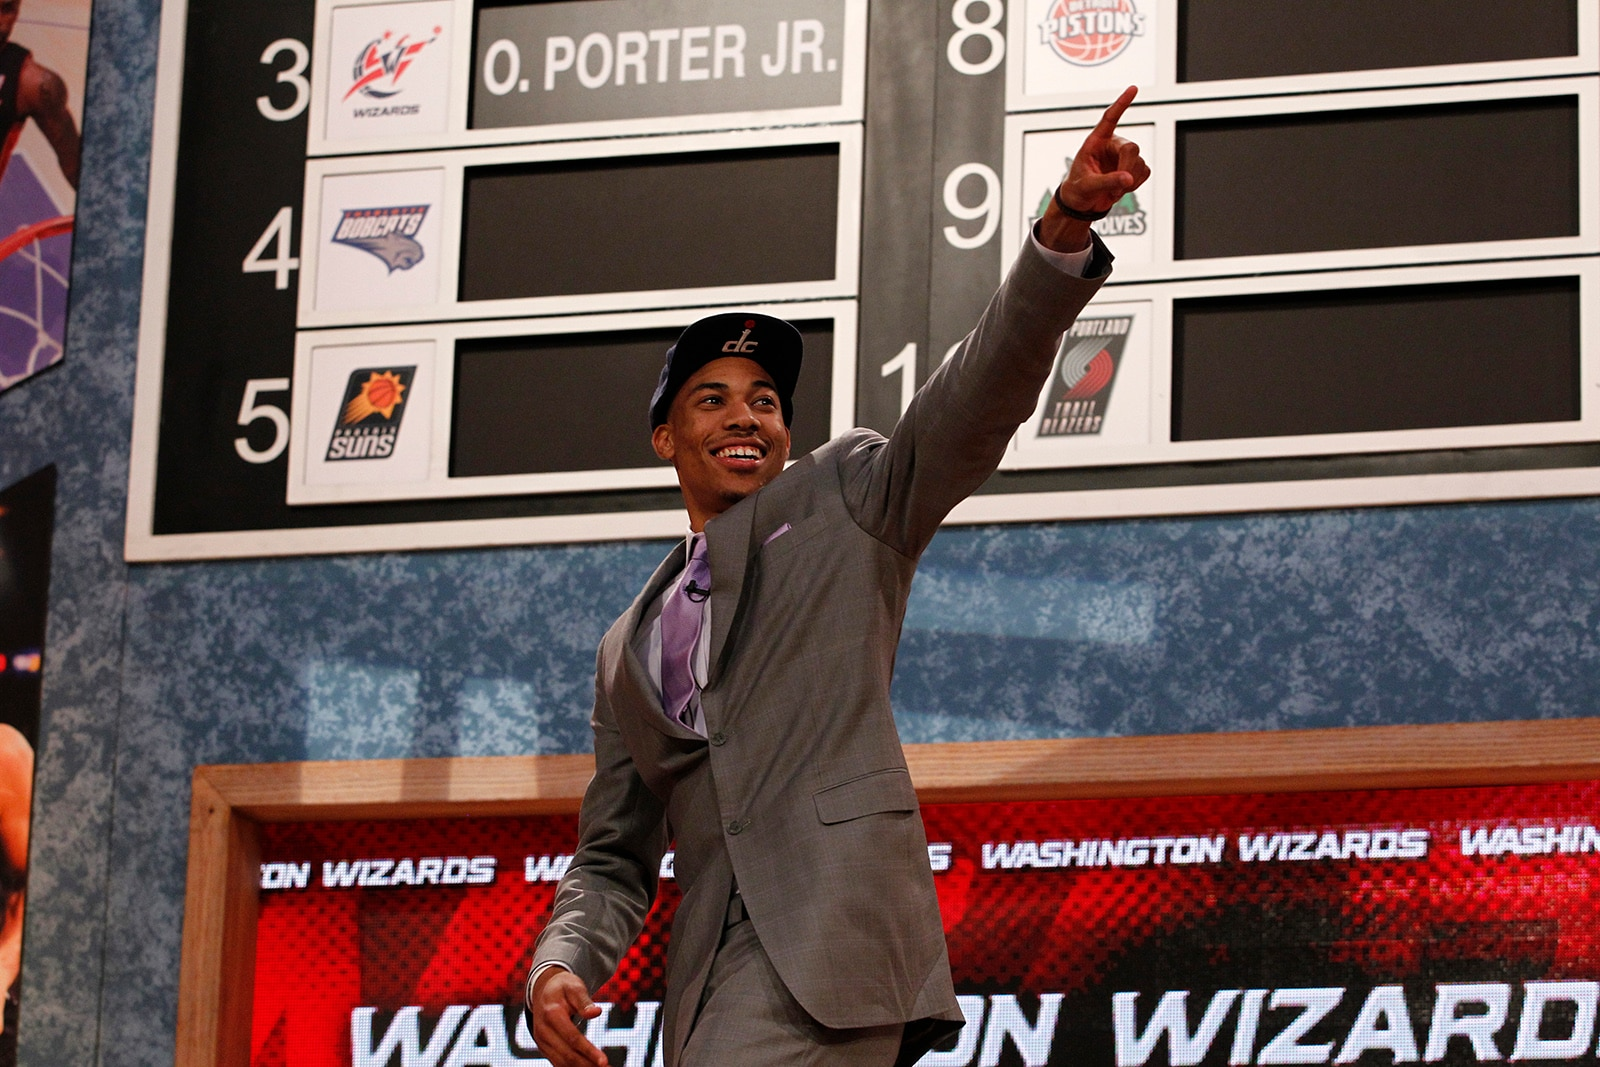 Otto Porter Jr. During the 2013 NBA Draft, where he was selected third by the Washington Wizards